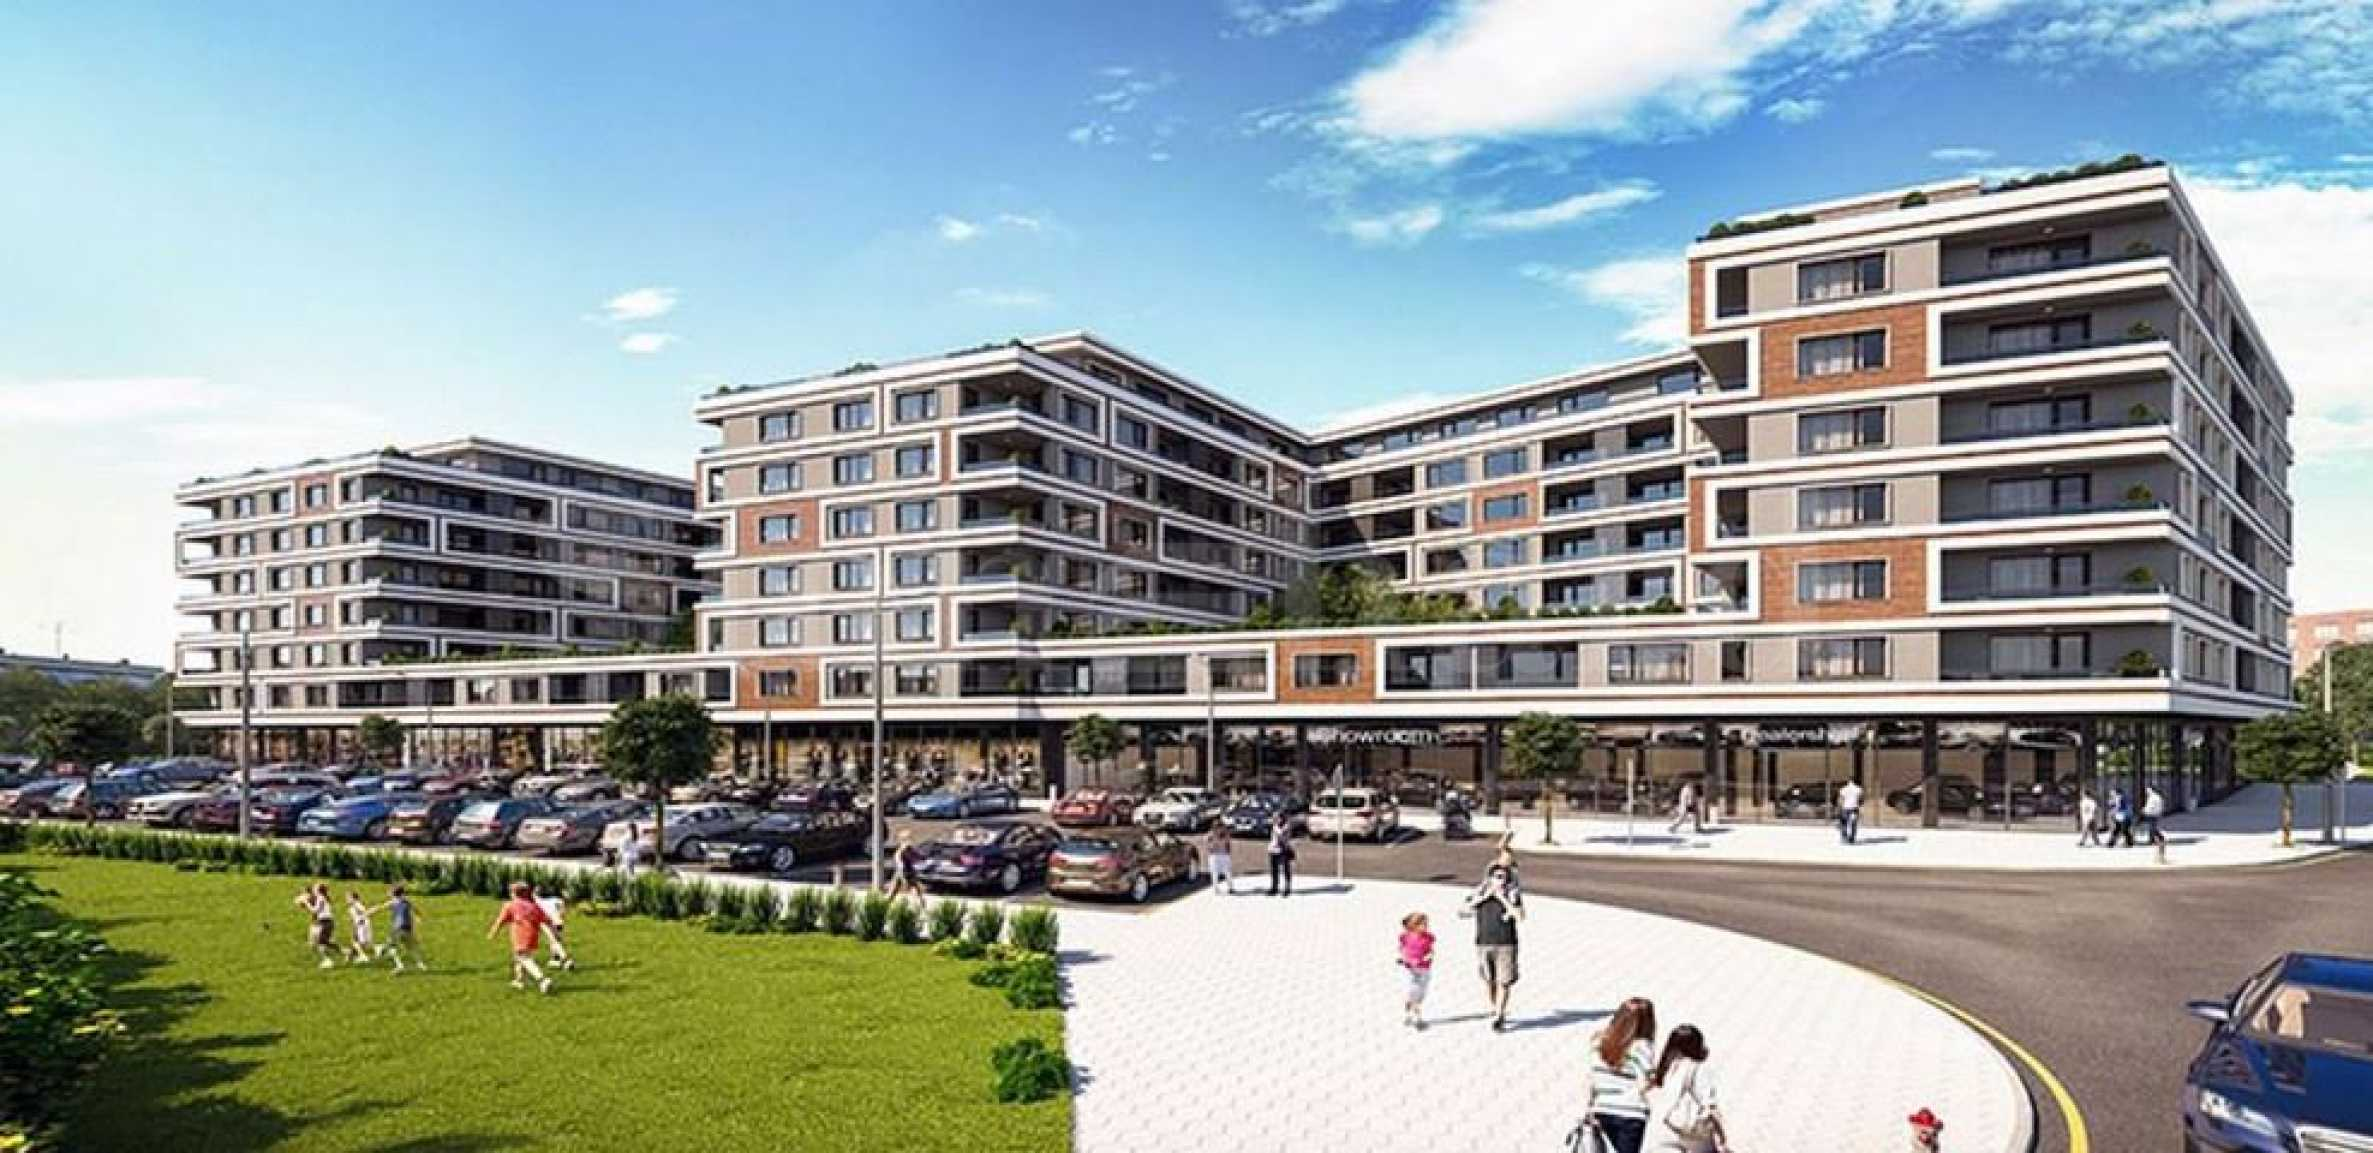 Apartments in a new mixed-use building in Burgas1 - Stonehard